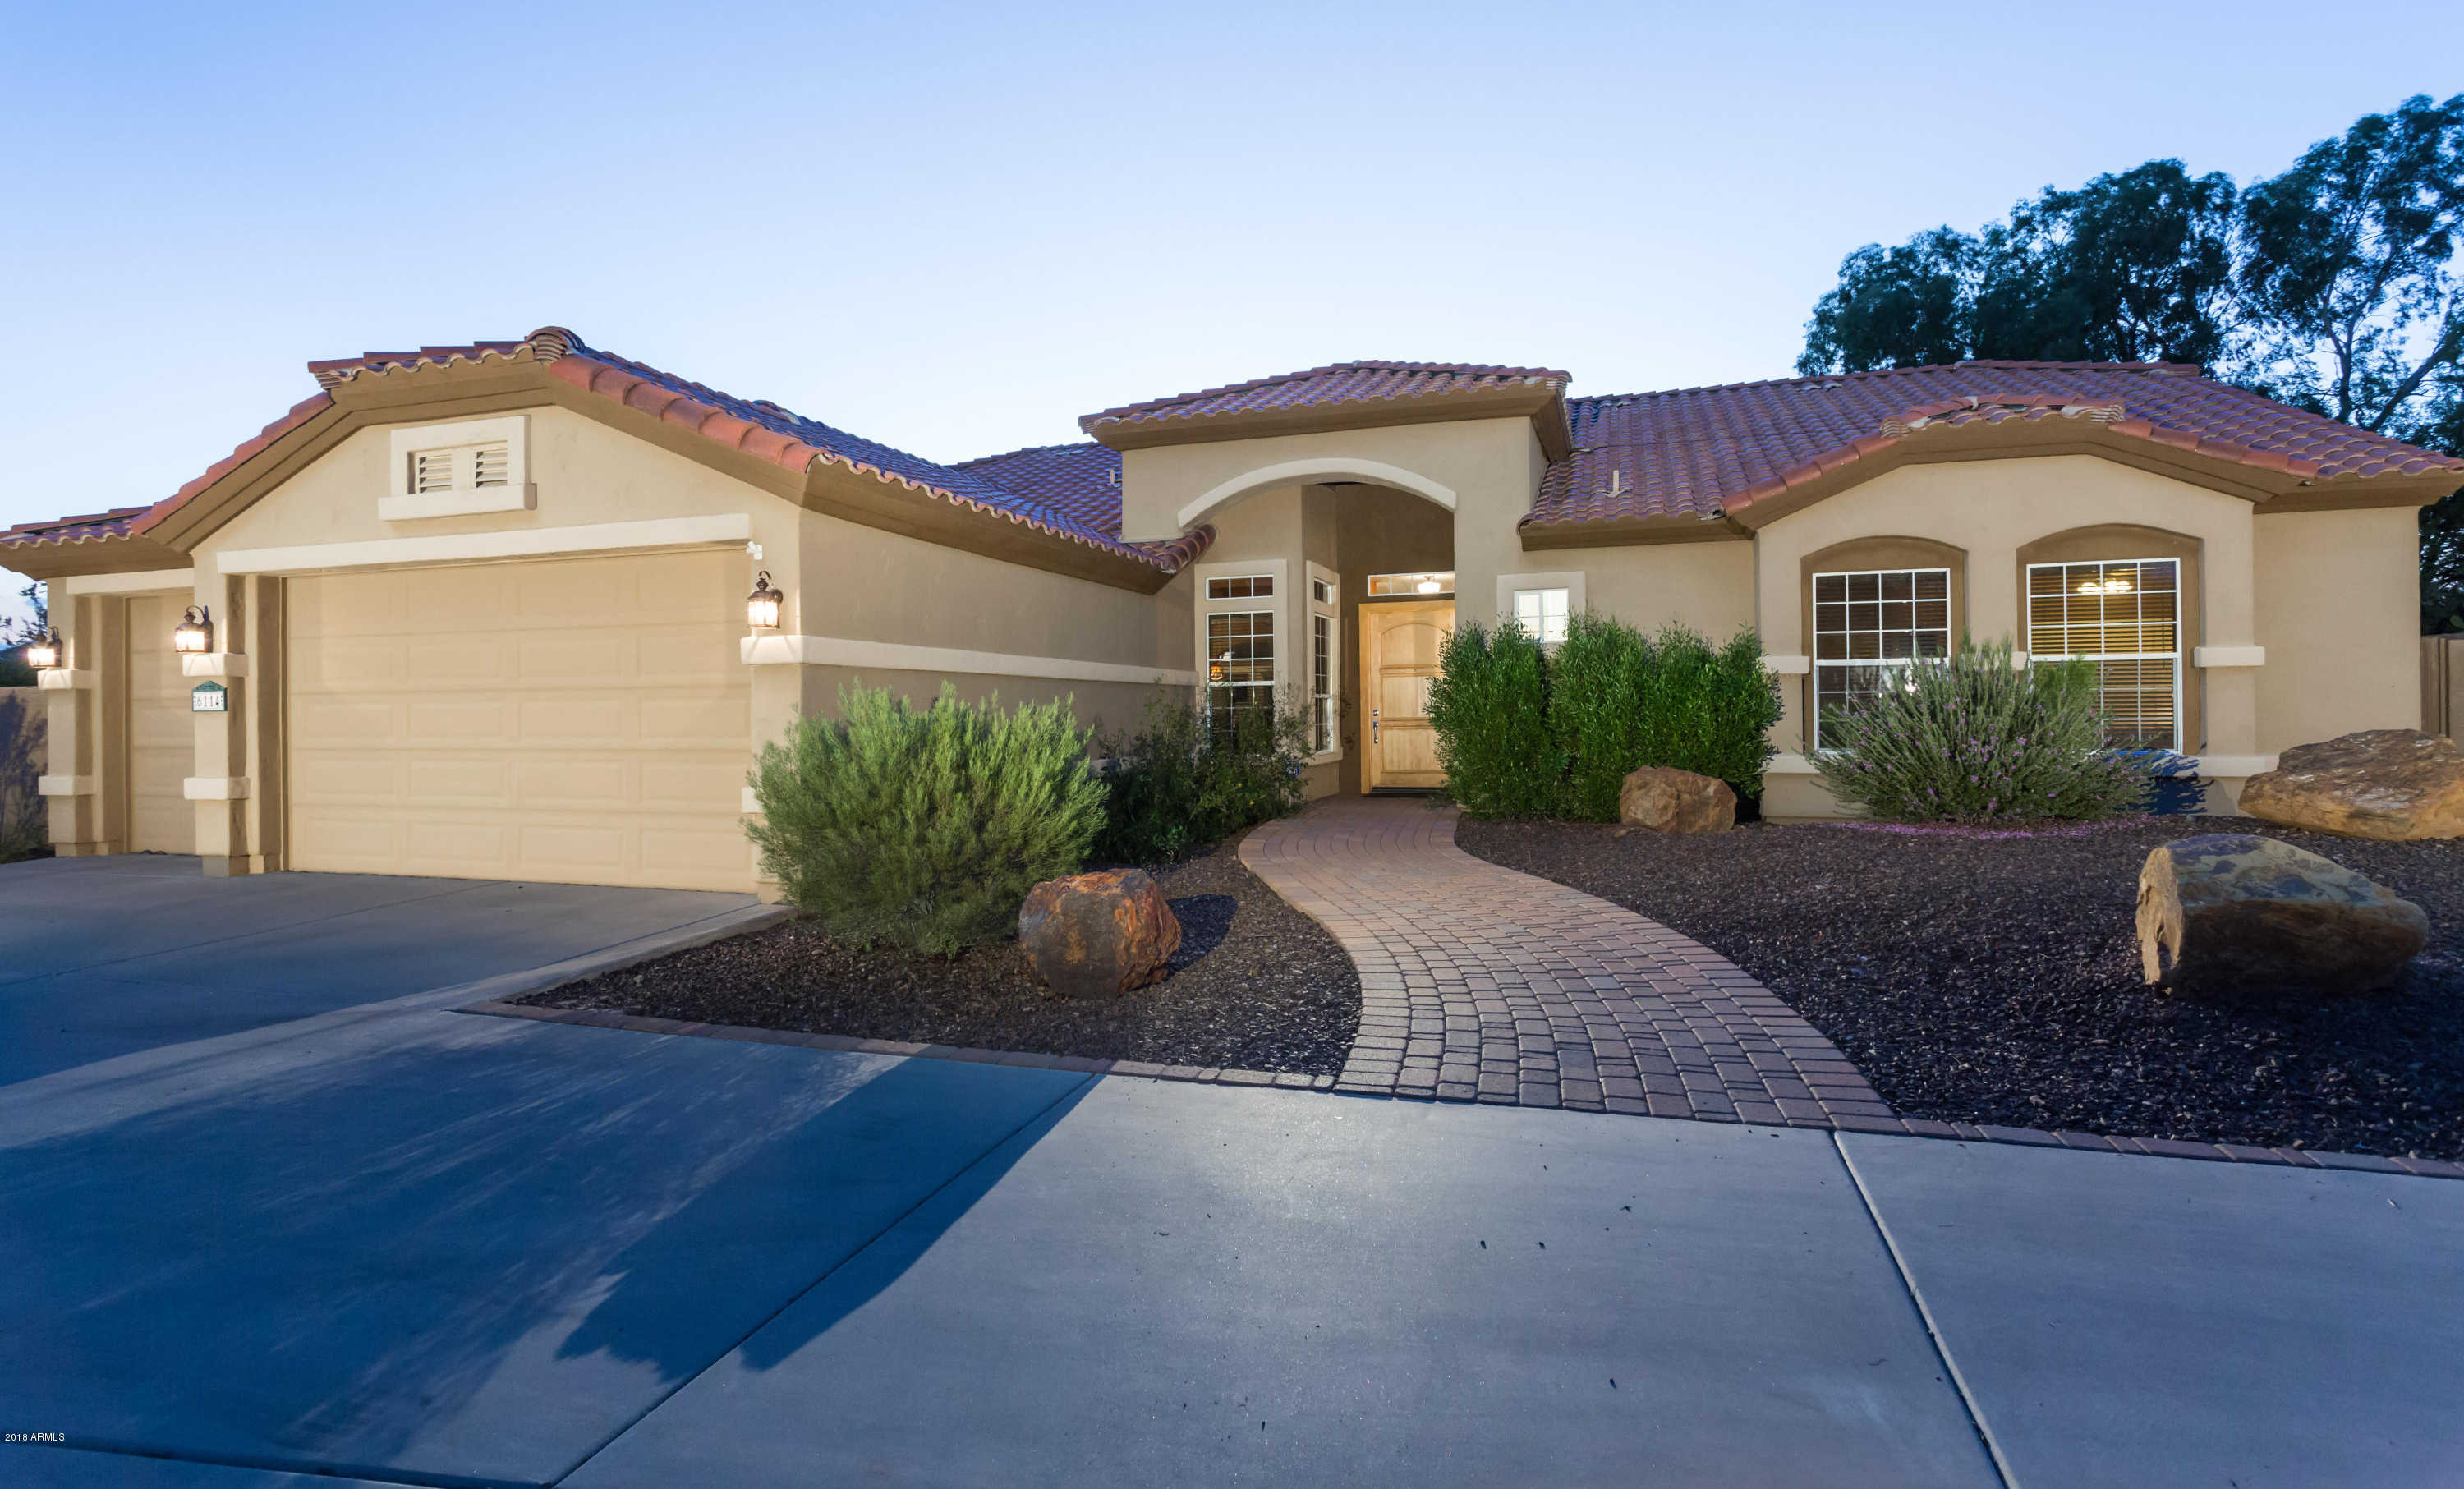 - 4Br/3Ba - Home for Sale in Desert Forest Park, Cave Creek